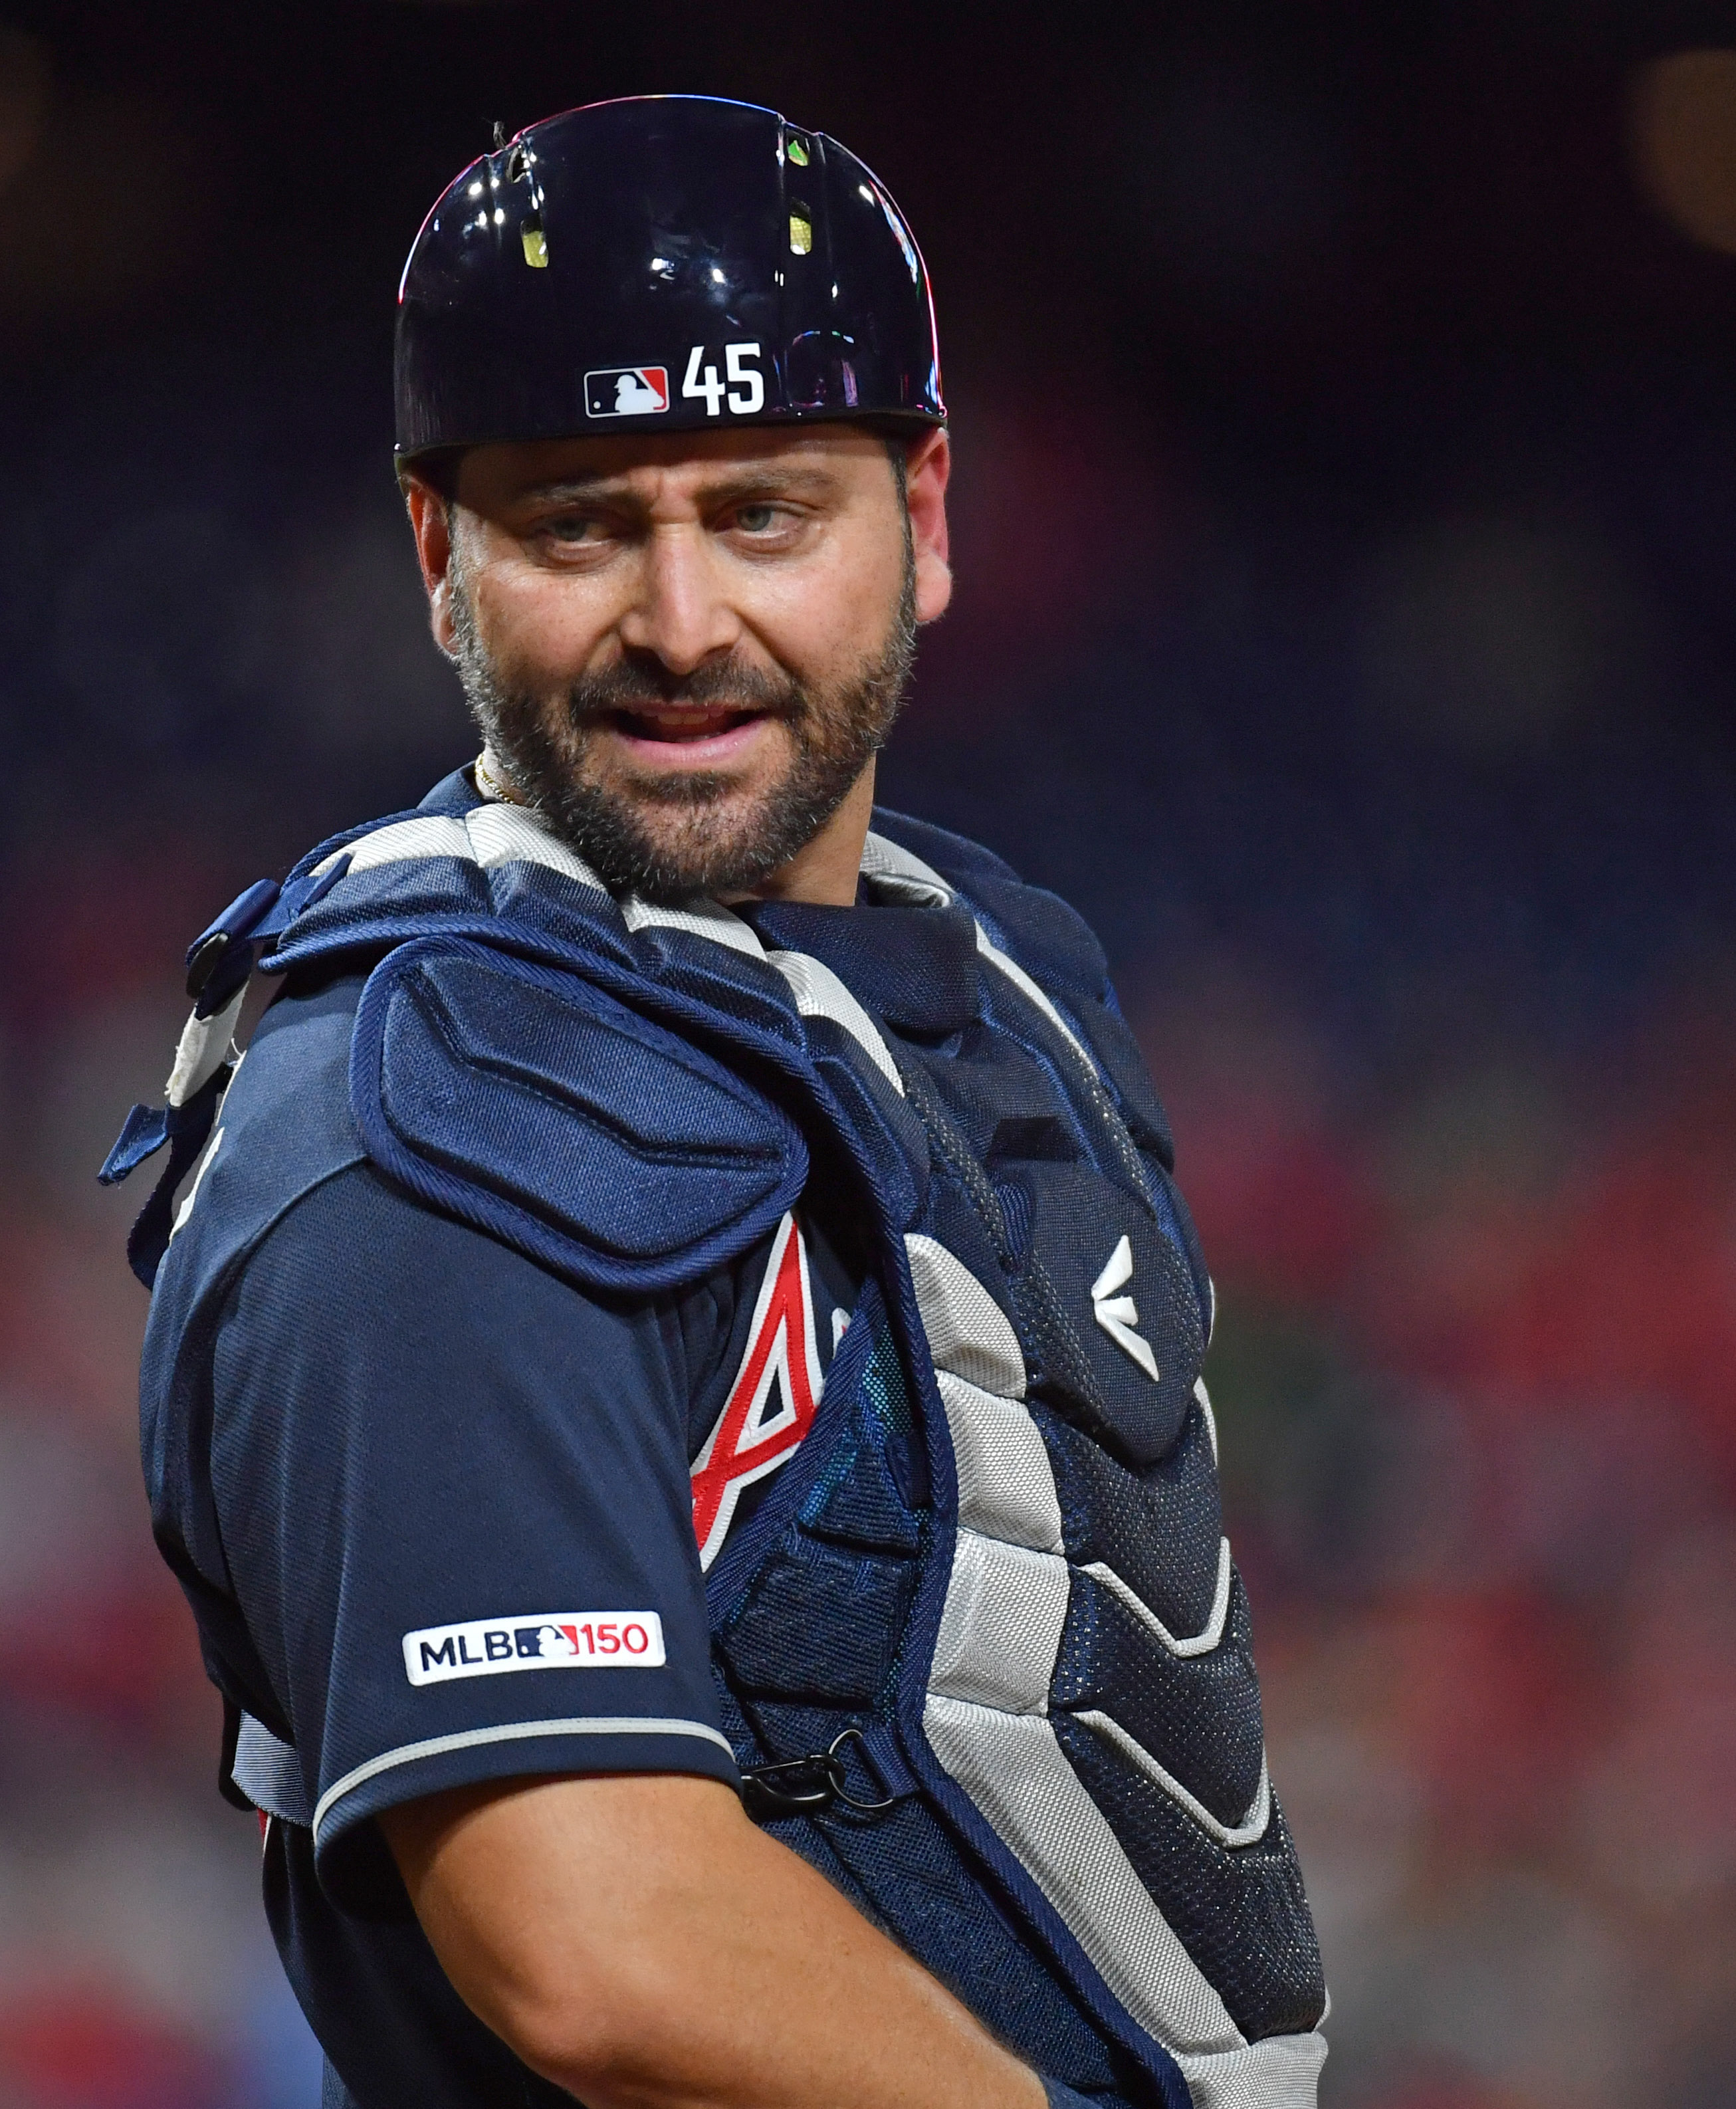 Marlins sign catcher Francisco Cervelli to one-year contract